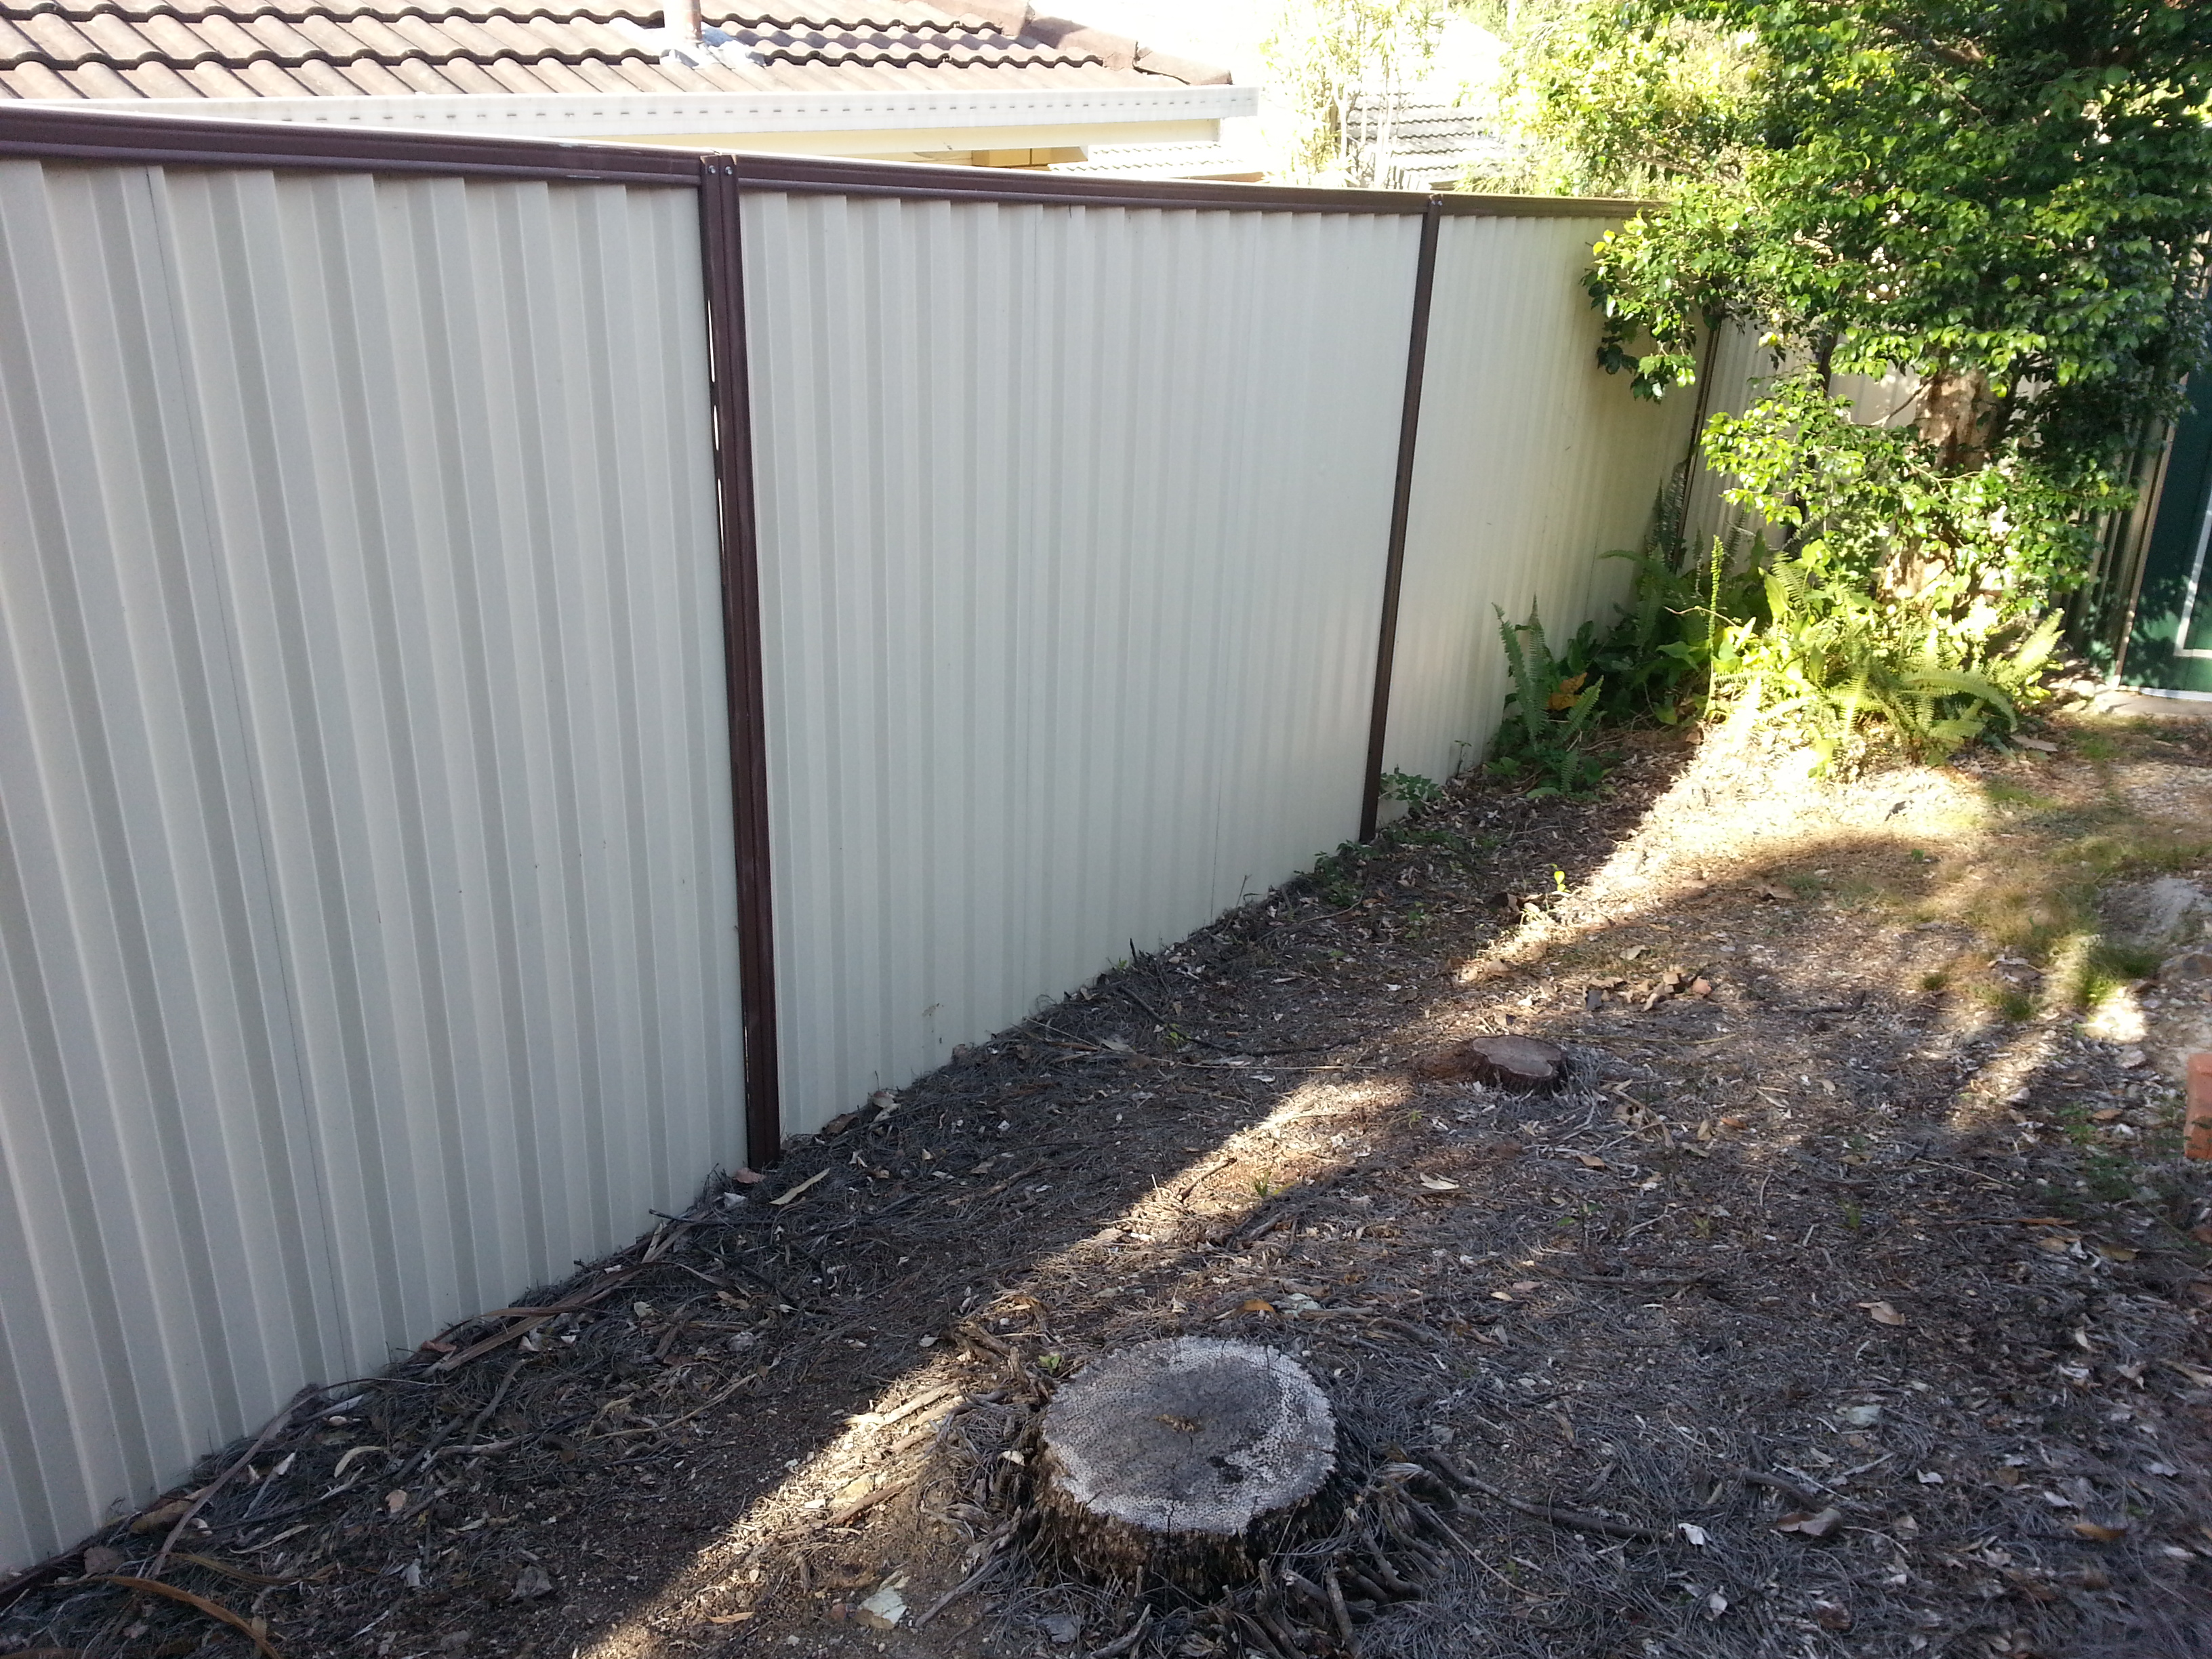 Colorbond Pool Fence1, Robson's Pool Safety Inspections, 7A/20 Bogong Street Riverhills Brisbane, QLD 4074